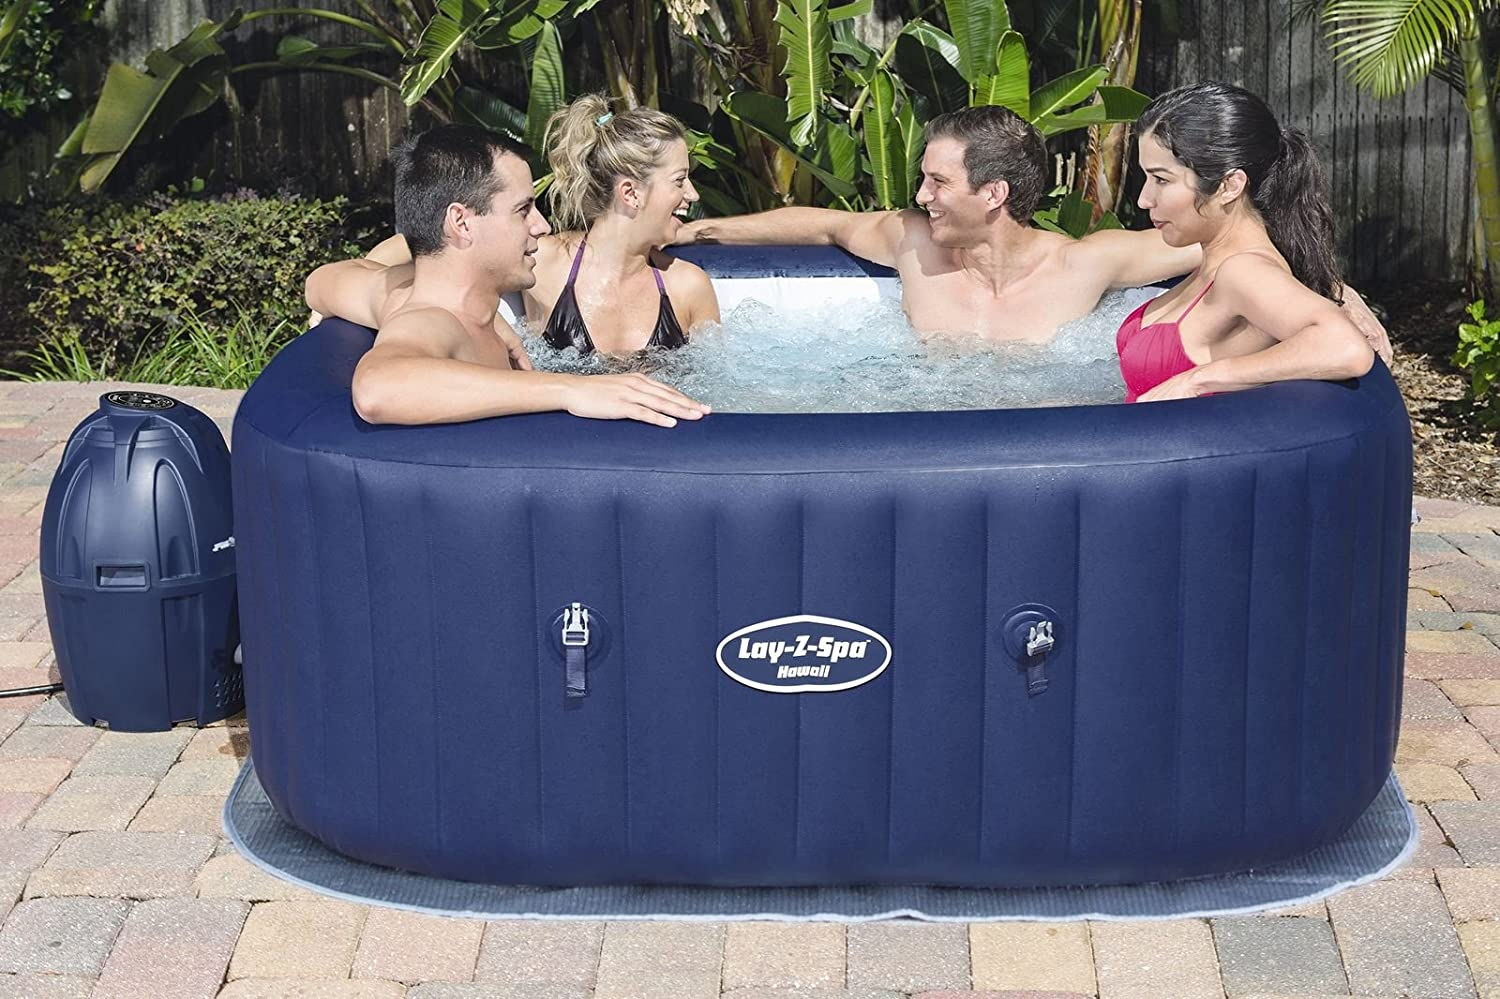 Bestway Lay-Z-Spa Hawaii für 4 bis 6 Personen